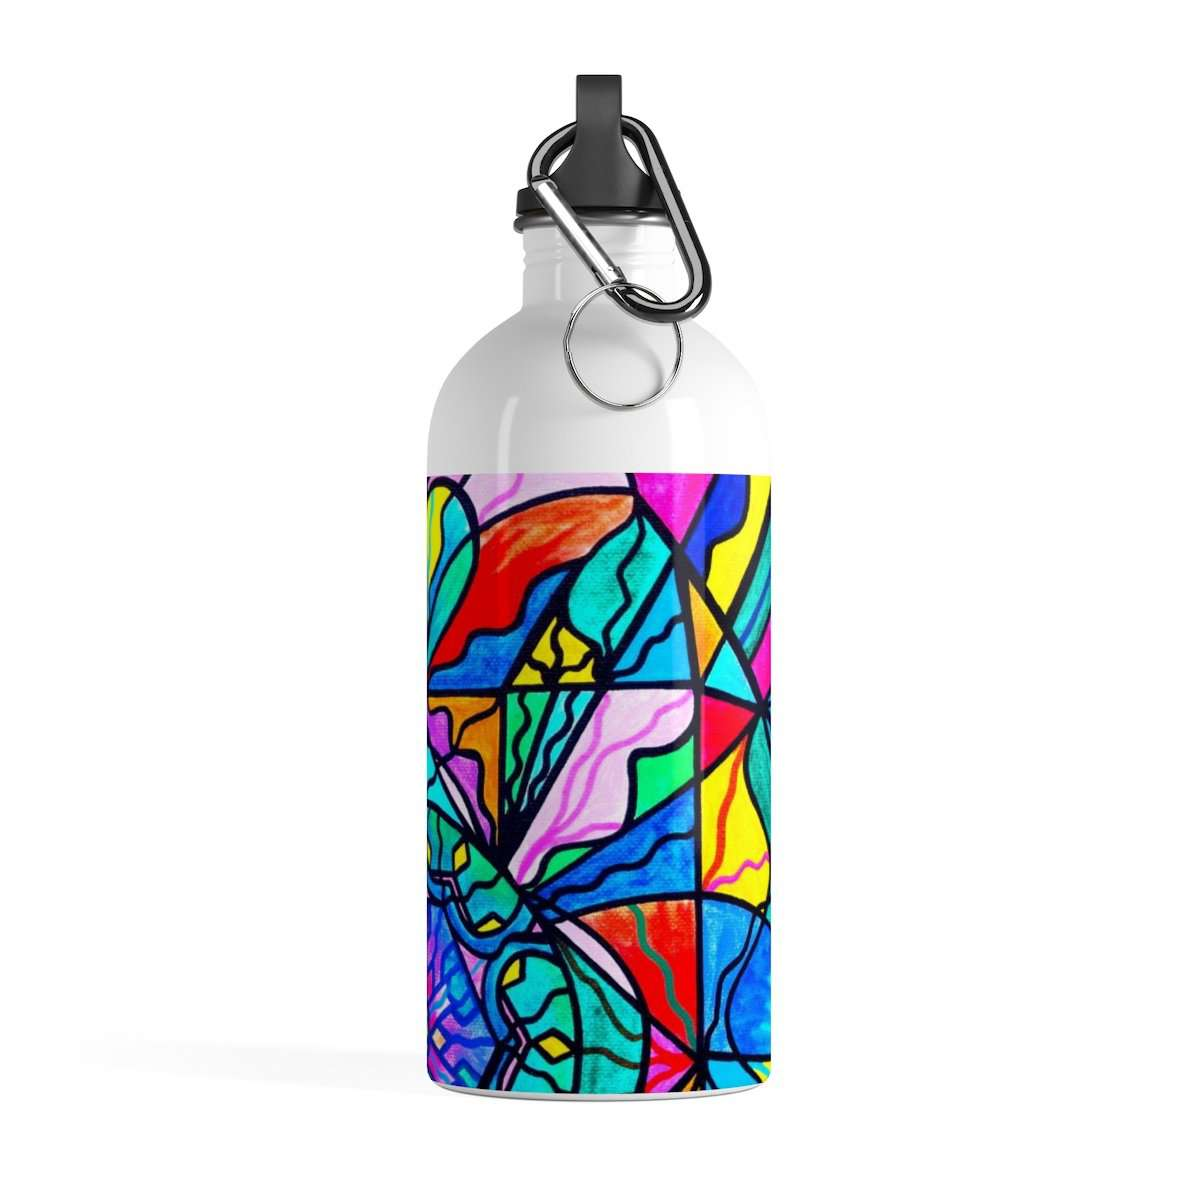 Anahata - Heart Chakra - Stainless Steel Water Bottle